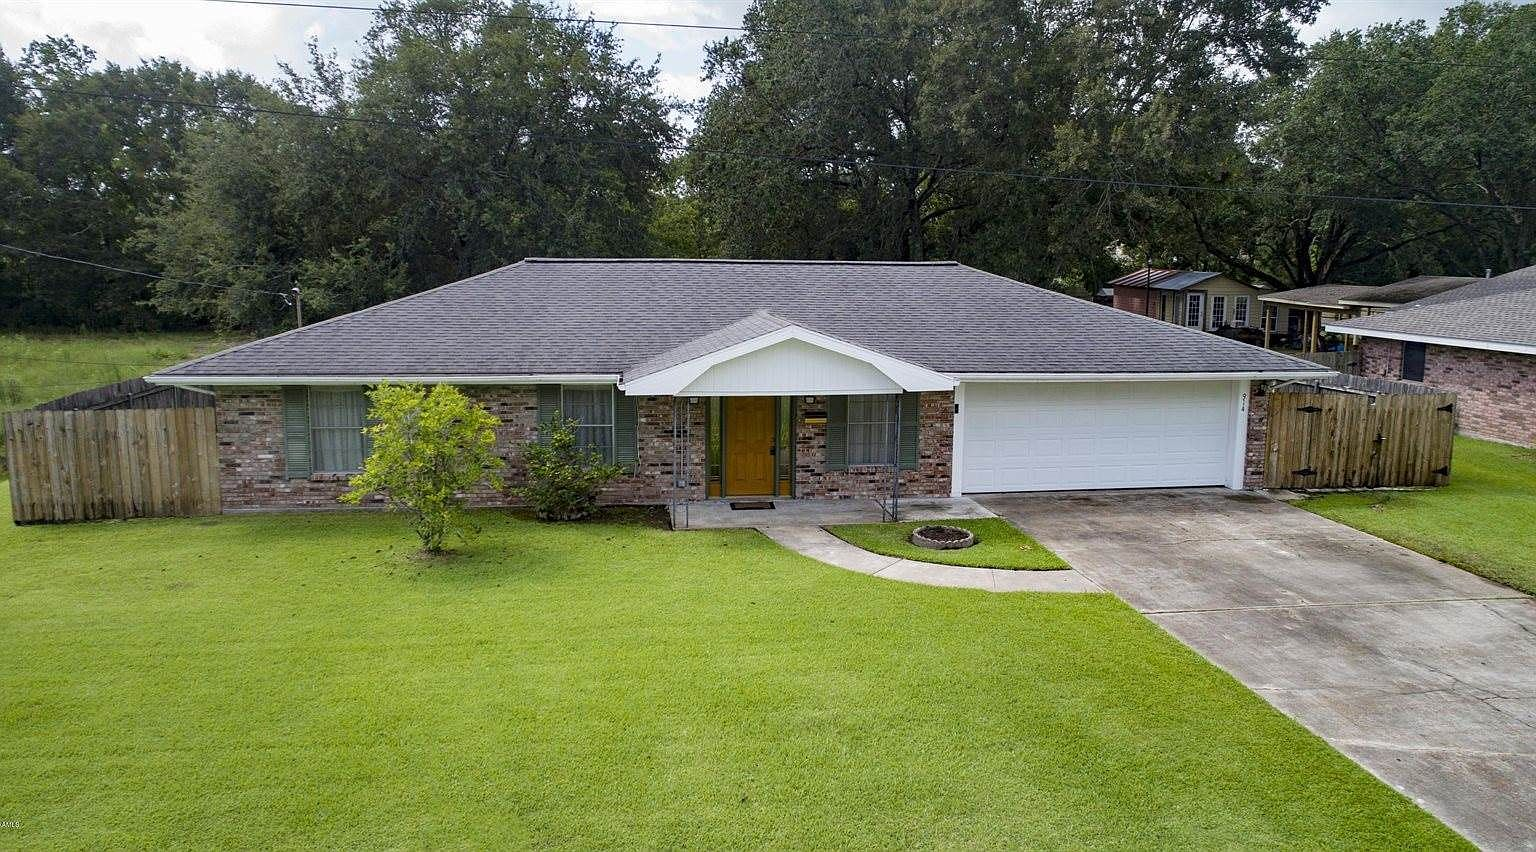 914 E 1st St Crowley La 70526 Zillow